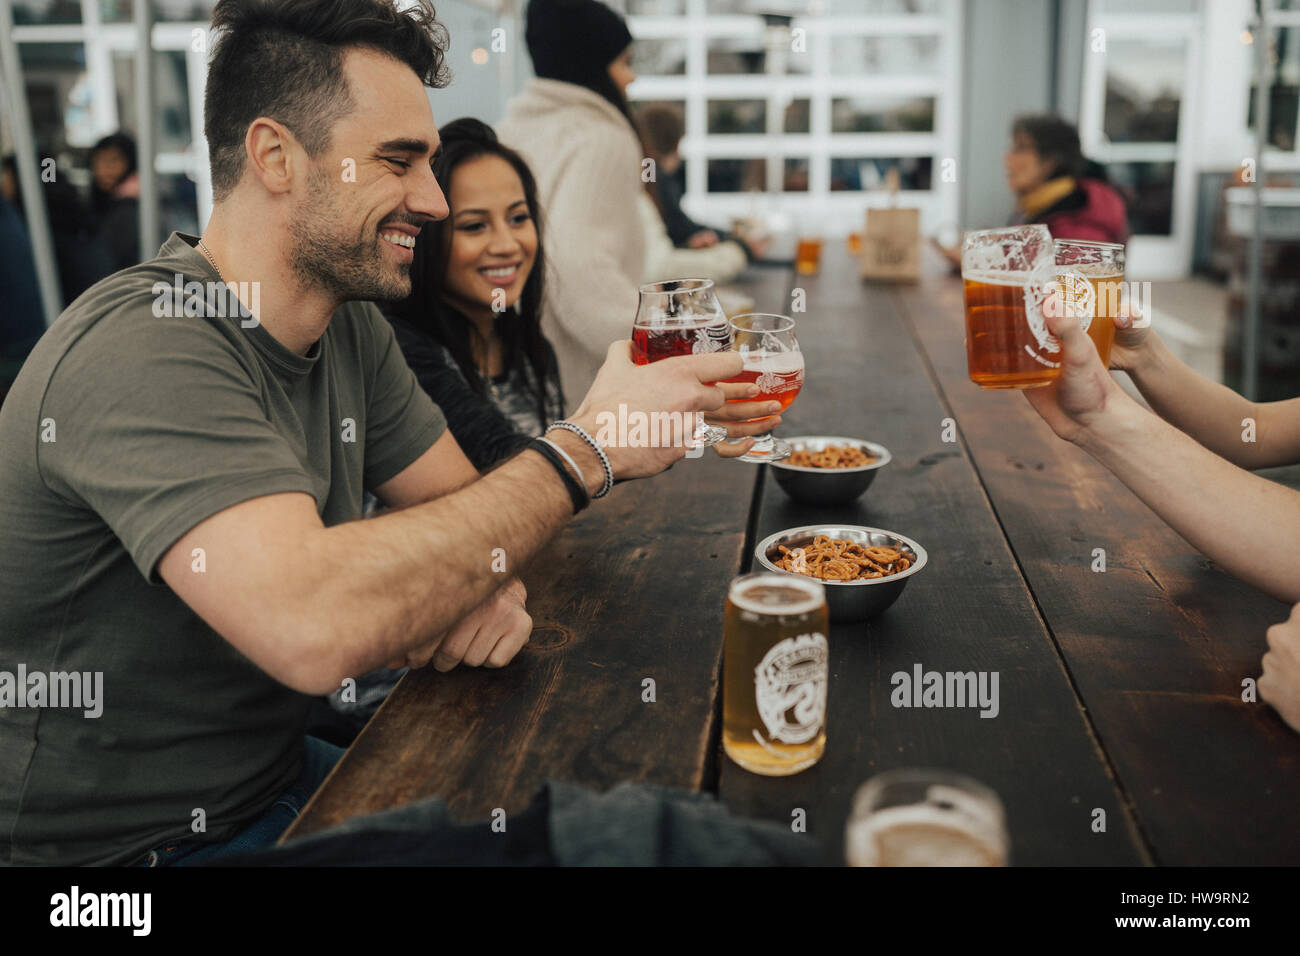 Cheers to a good beer and better friends - Stock Image